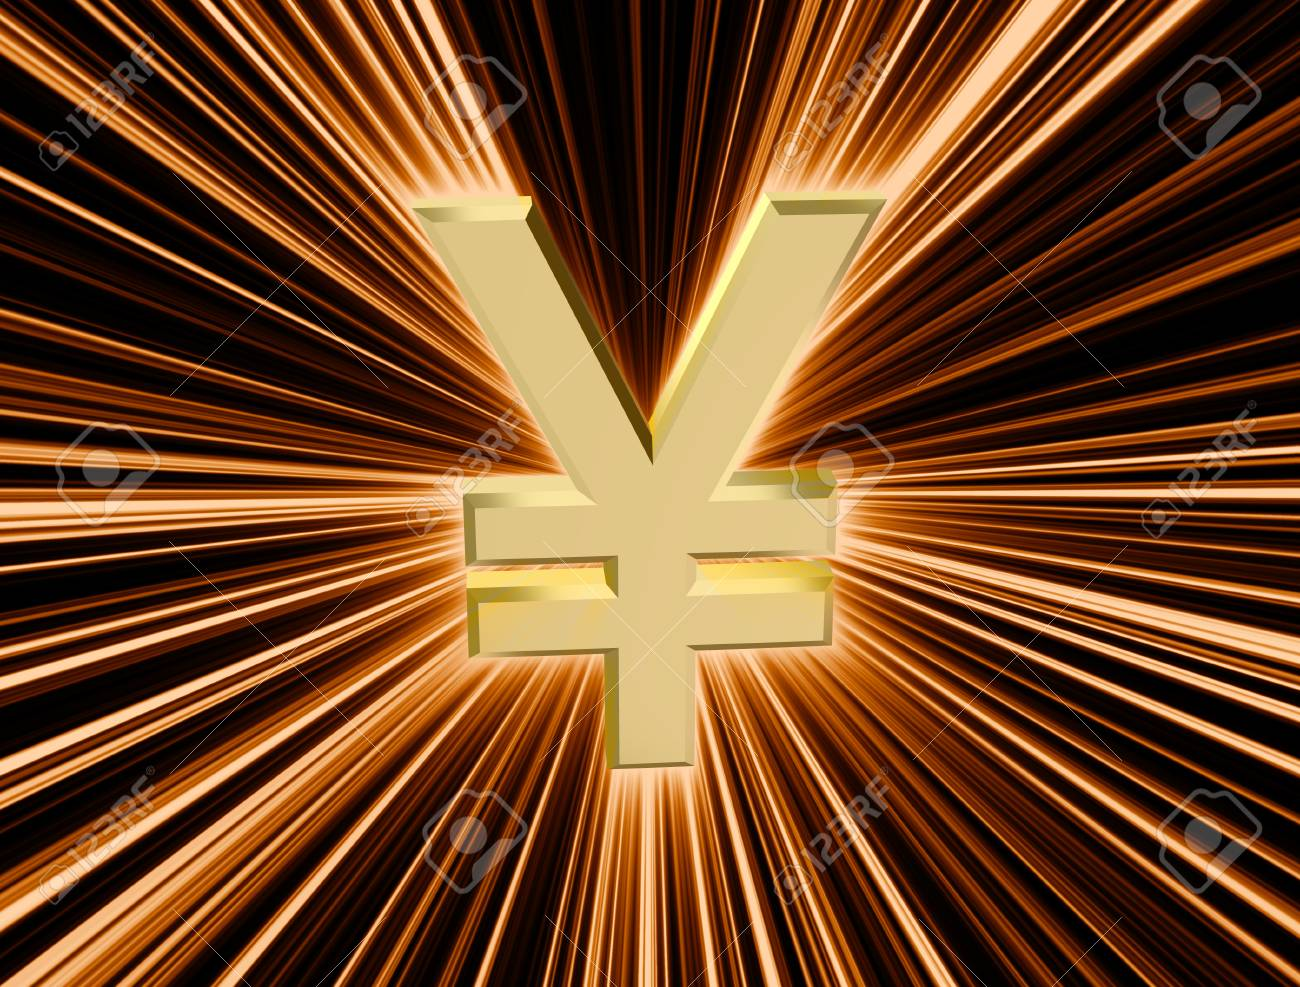 three-dimensional image of golden yen symbol among the colored rays - 74615825